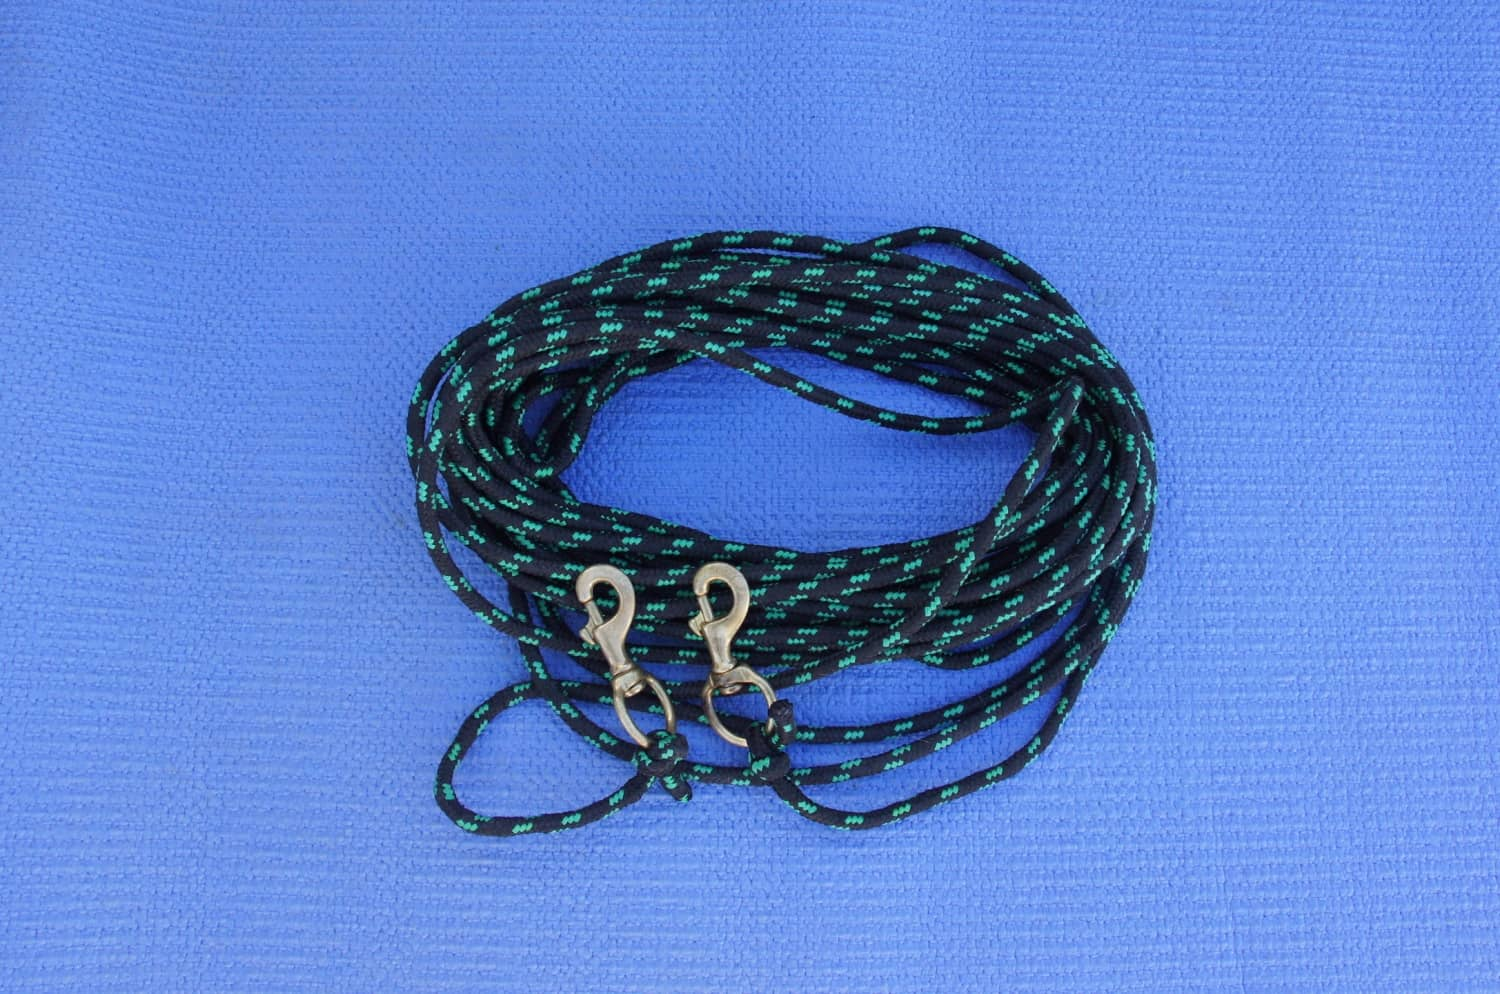 Wound rope with staples attached to each end